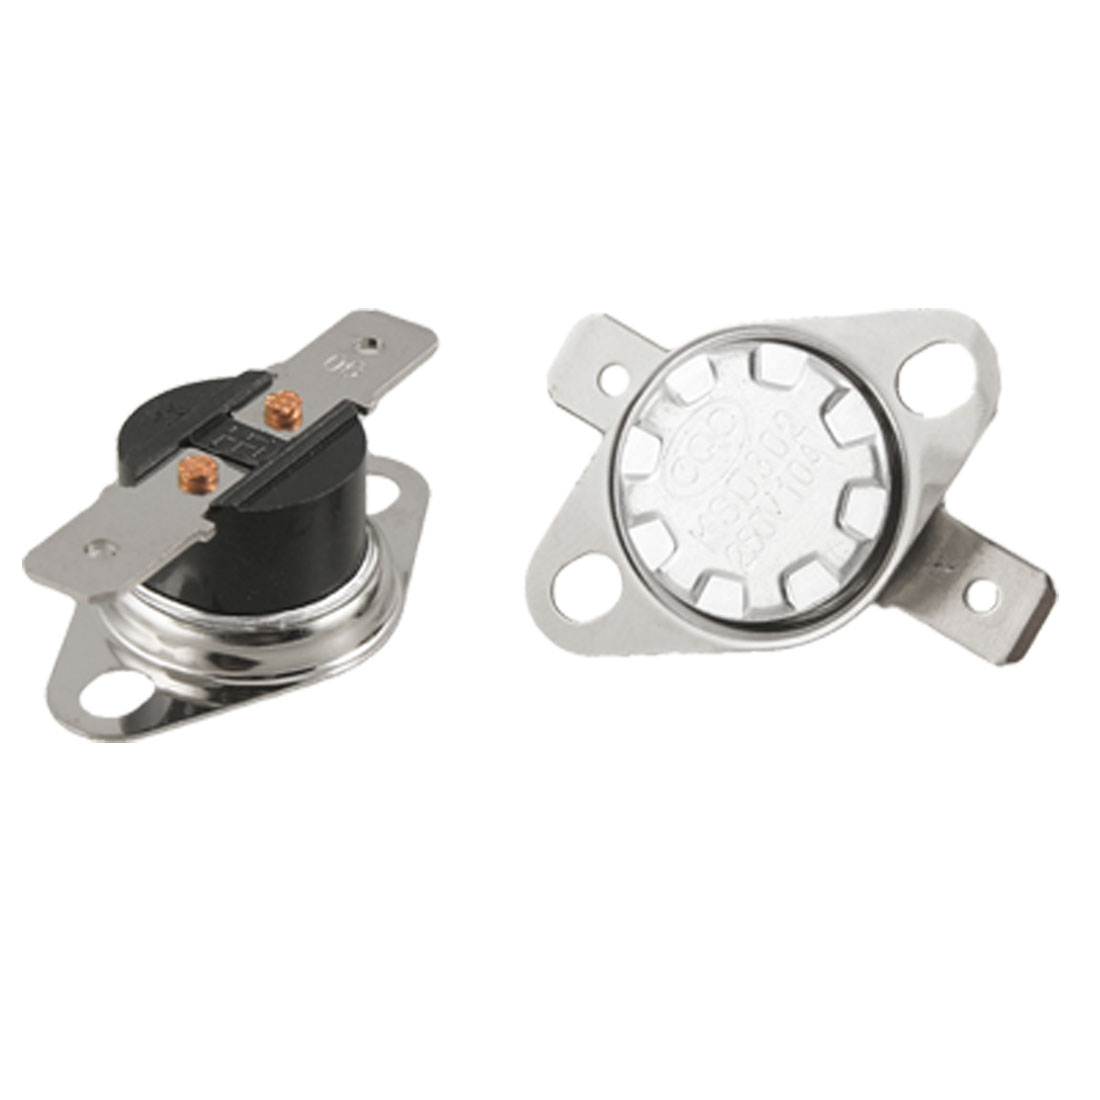 2 x KSD302 90 Celsius Temperature Control Switch Thermostat N.O.